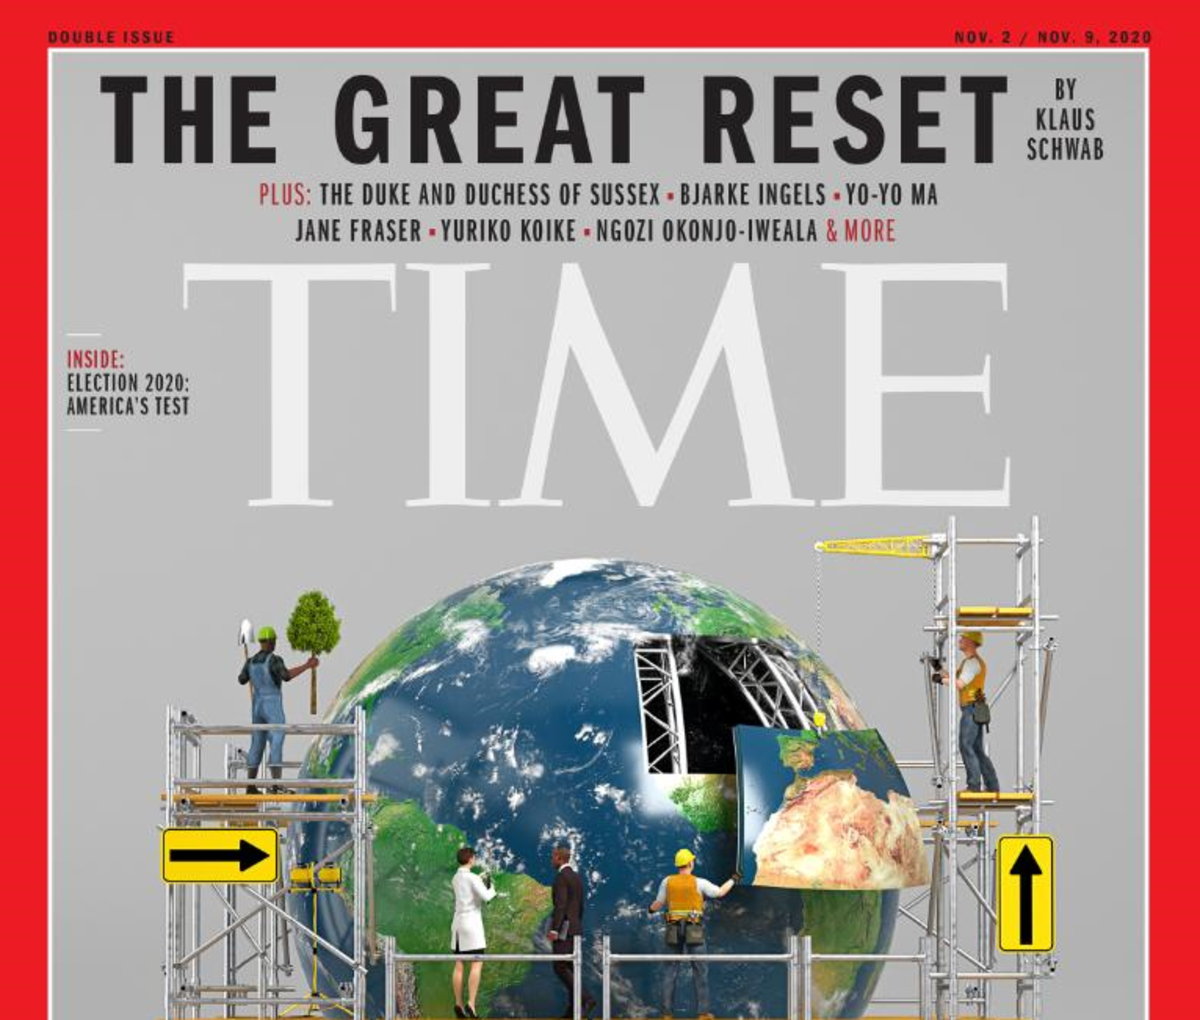 Time magazine cover story on the Great Reset